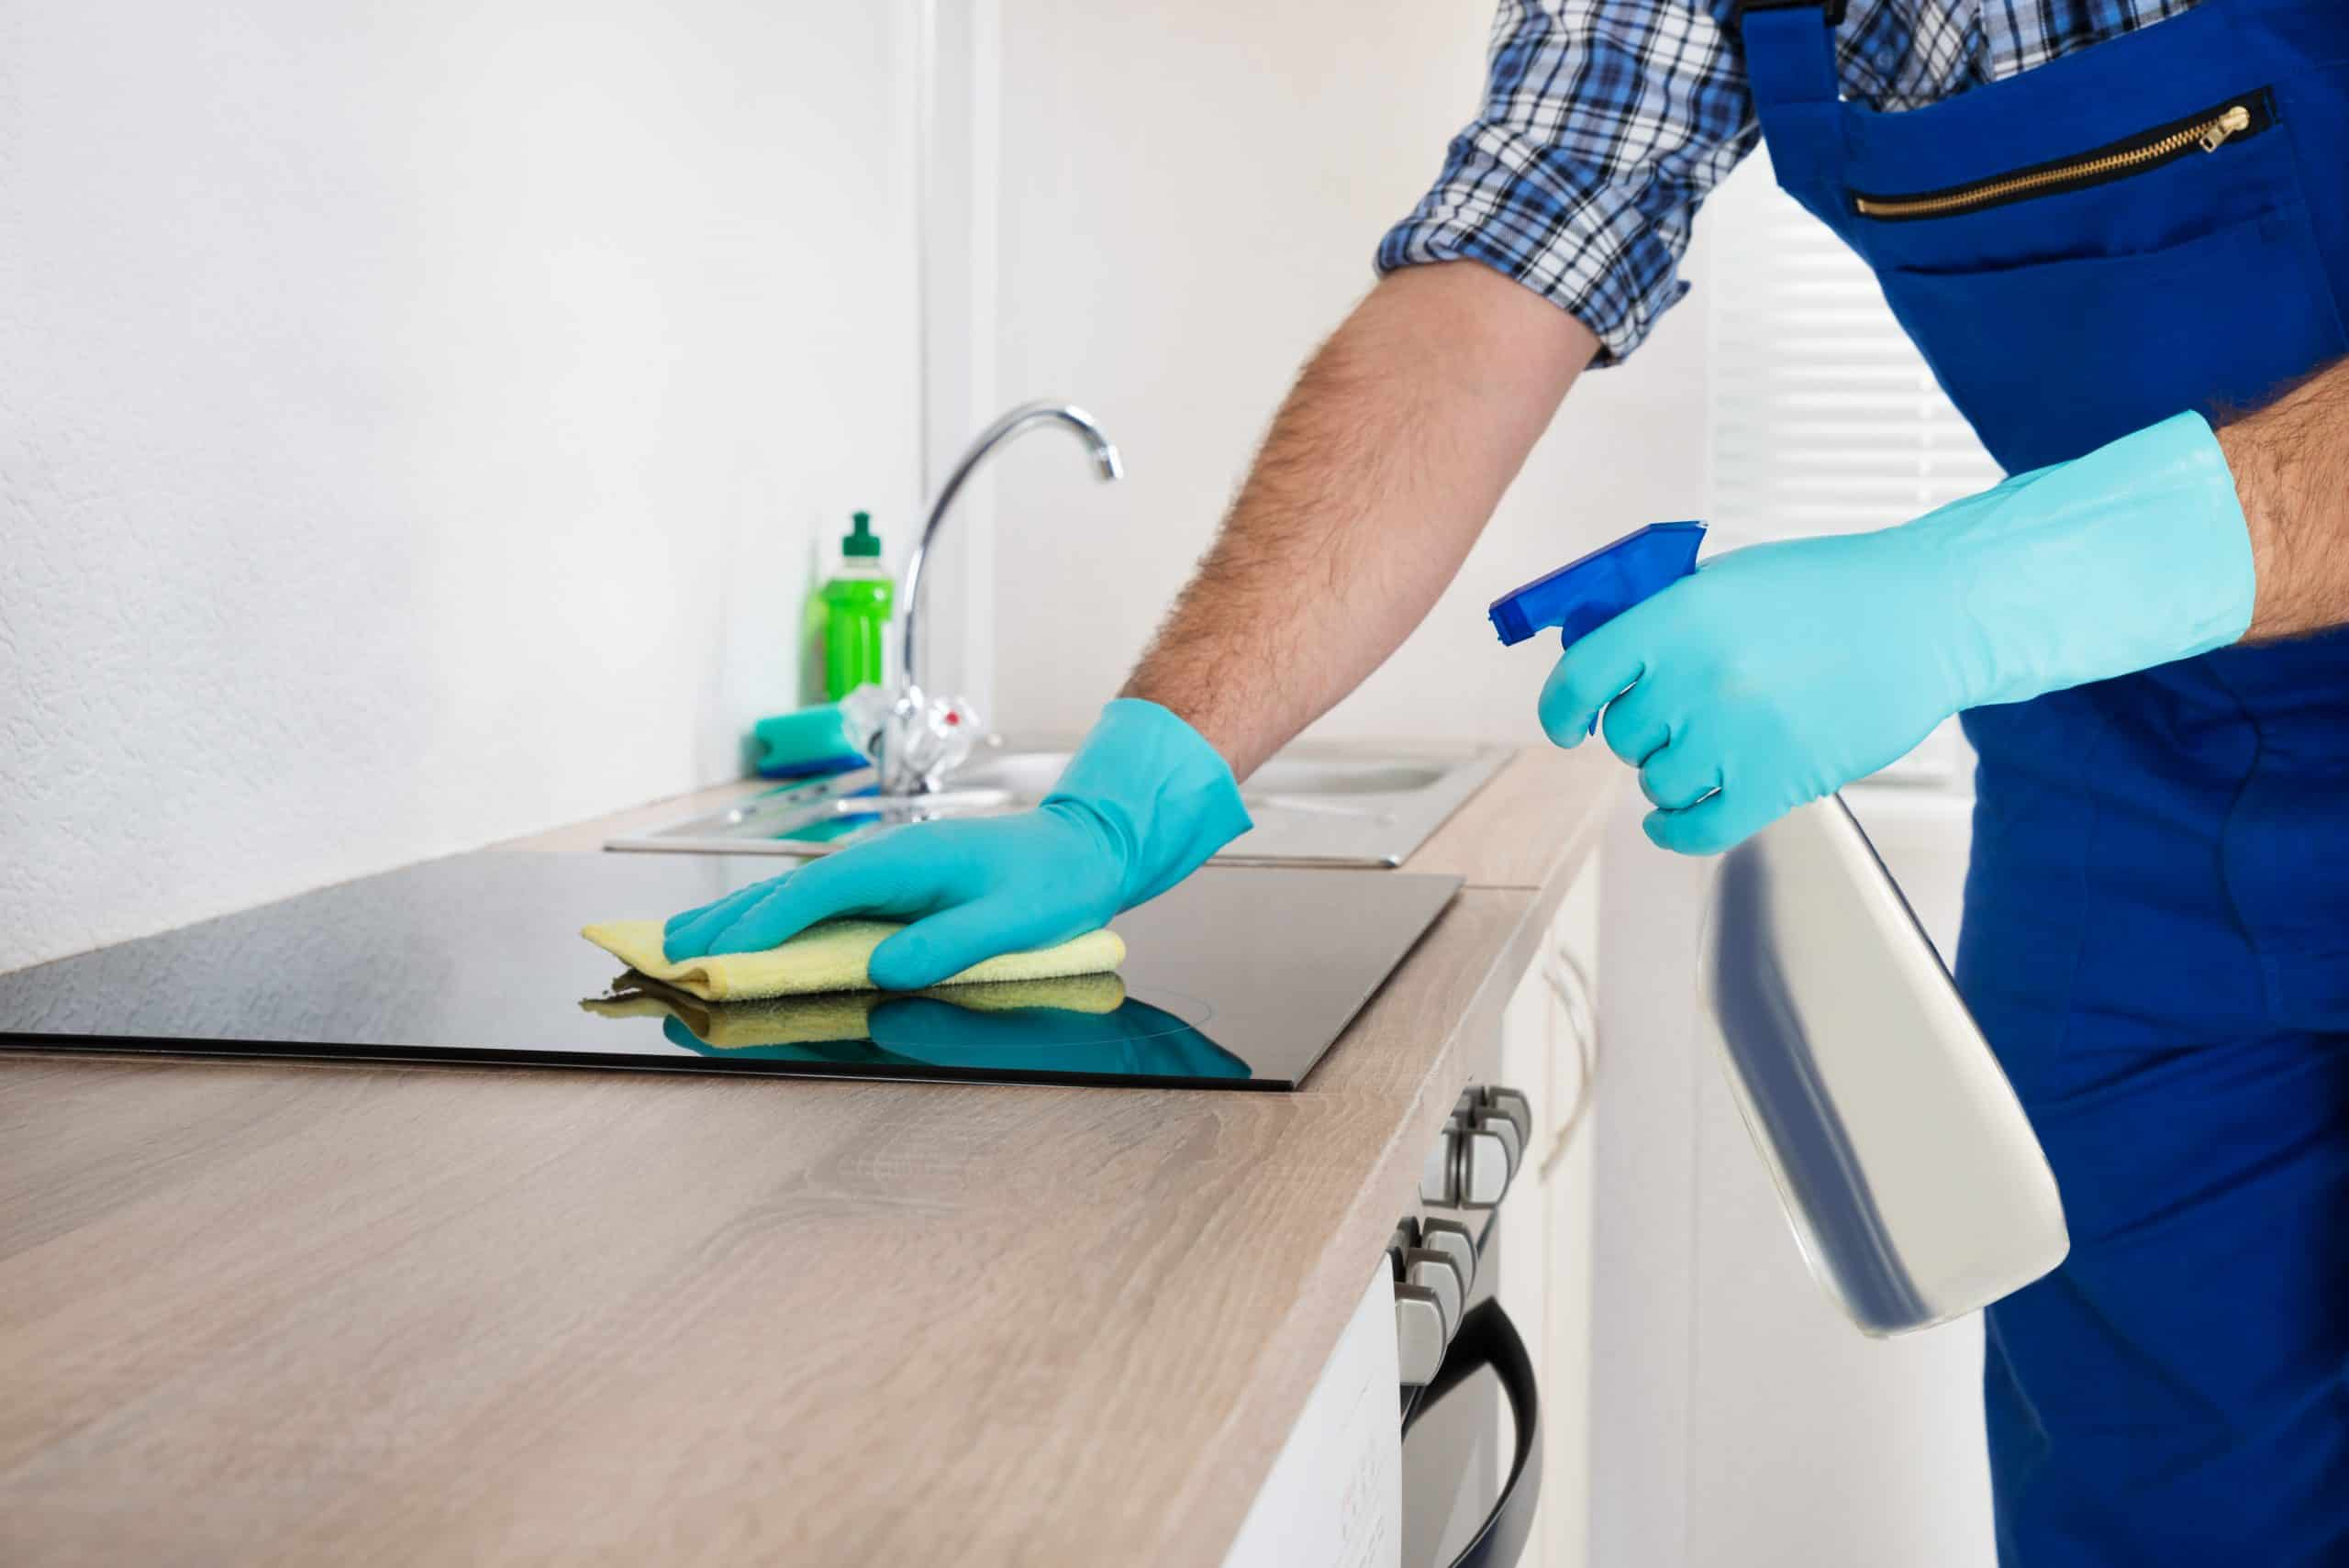 man with blue gloves cleaning the stove top